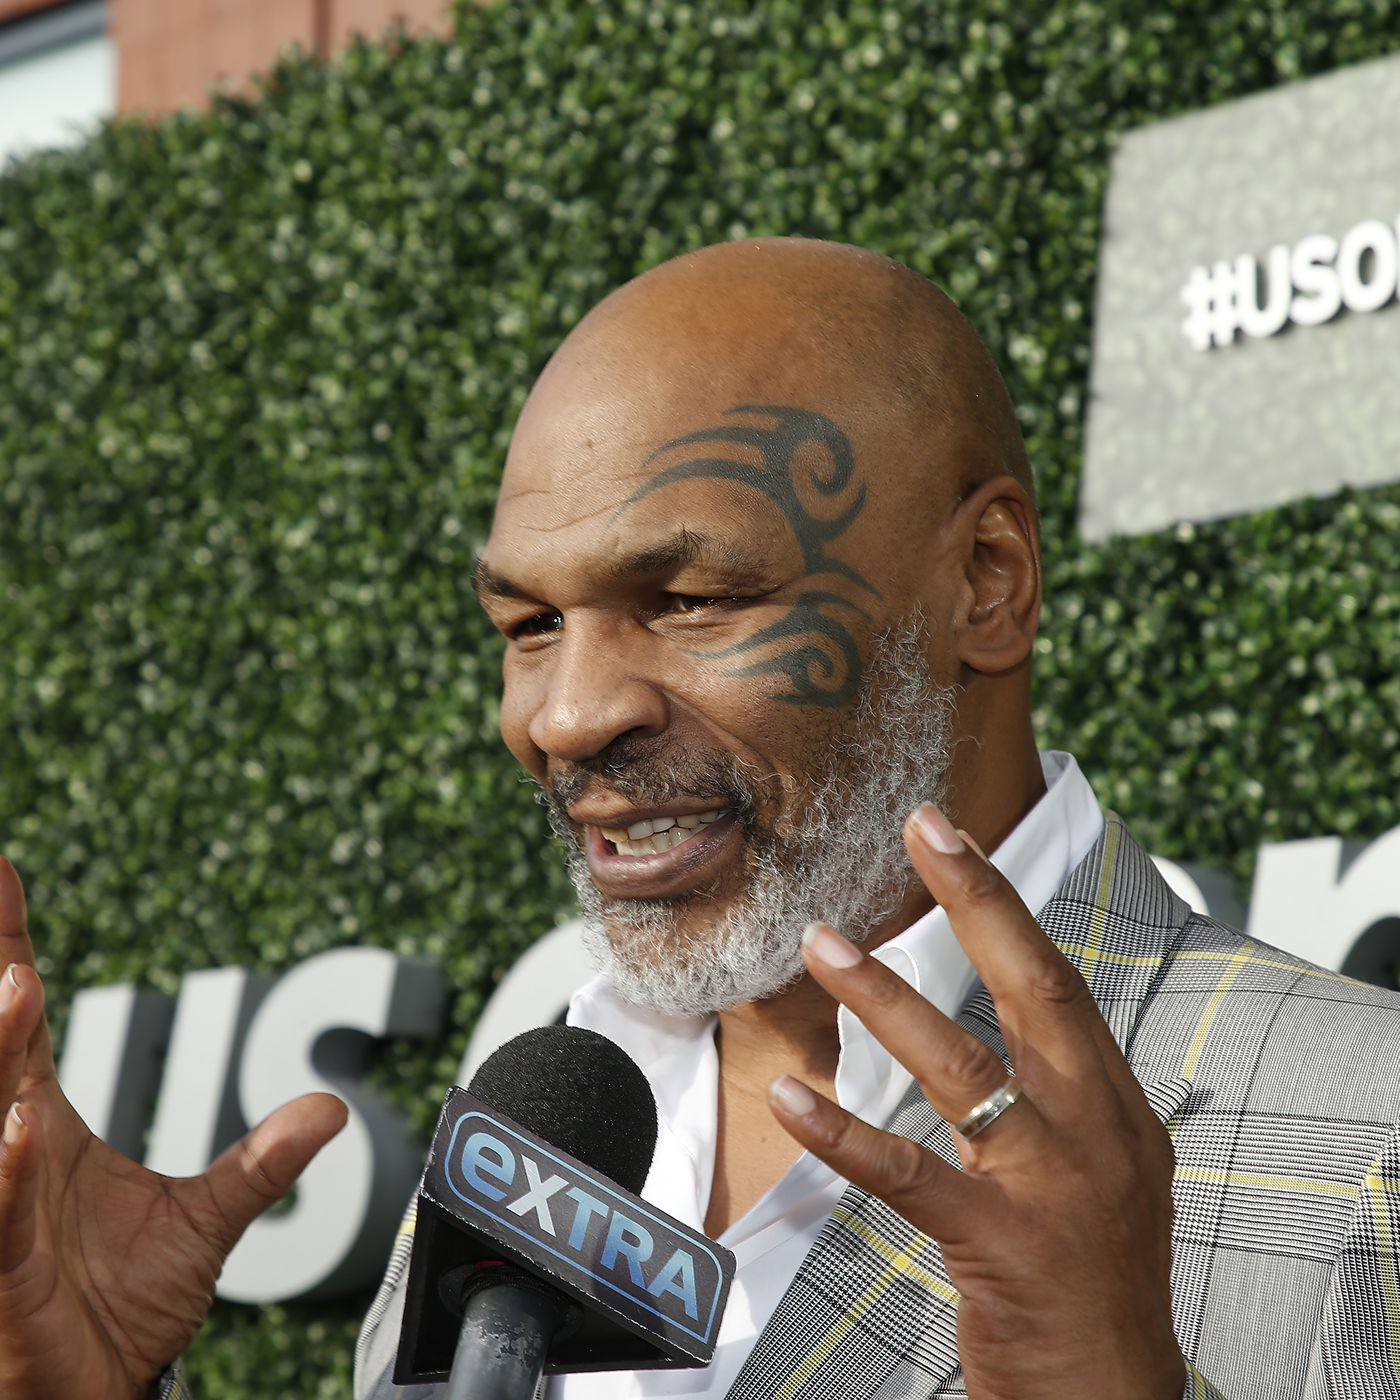 Mike Tyson To Be Given Over 20 Million Offer For Bare Knuckle Fight Bad Left Hook